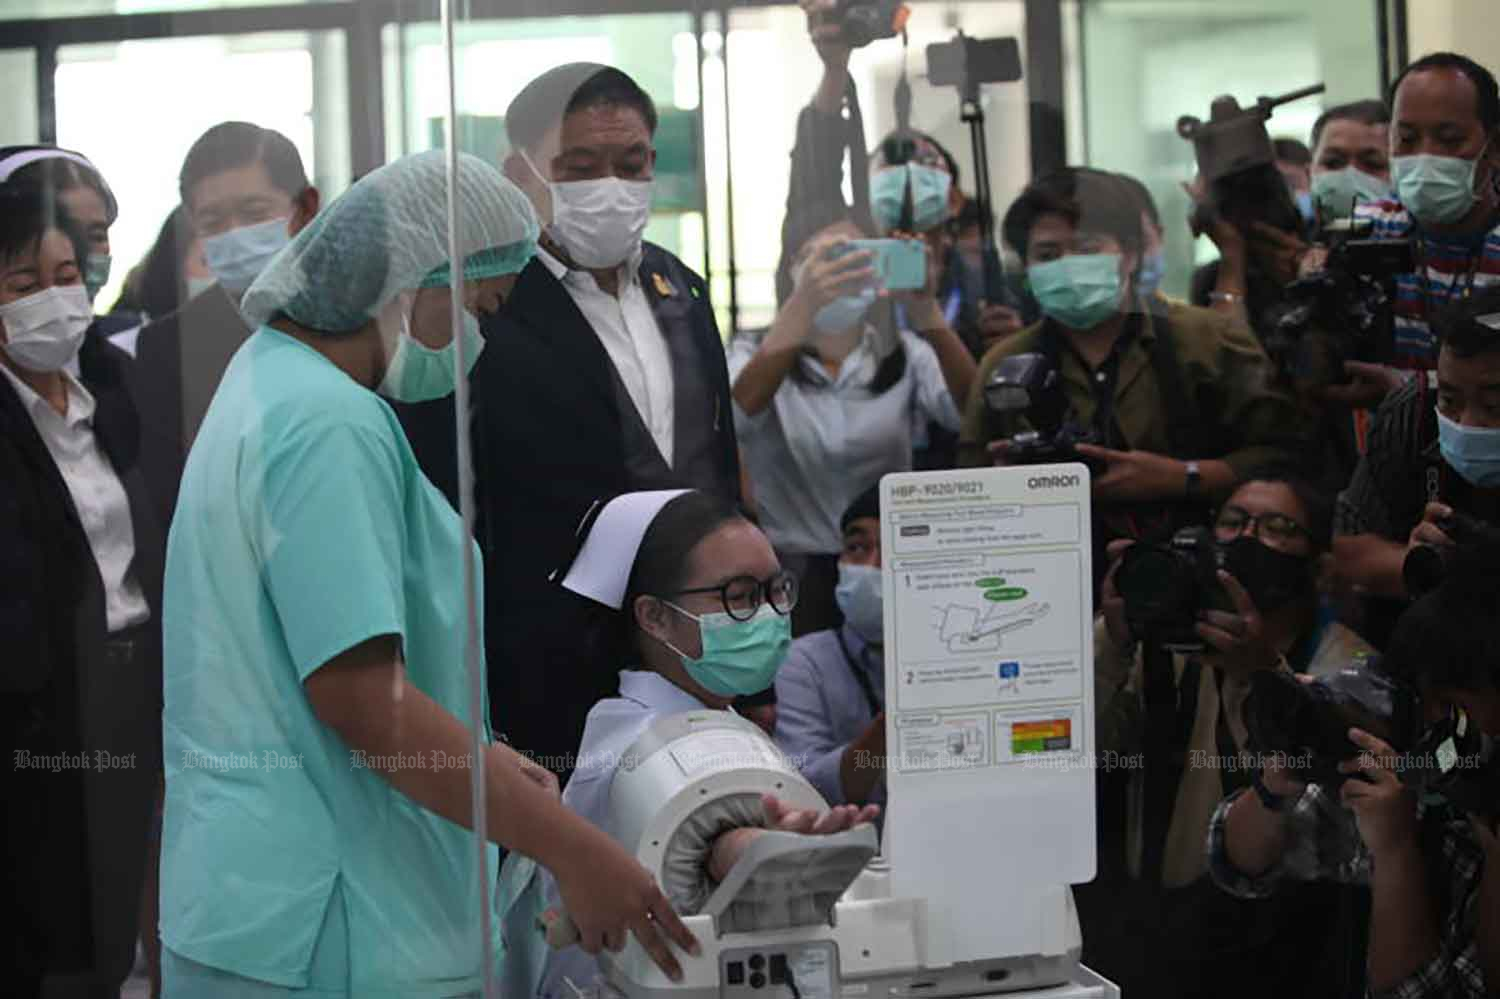 The Bangkok Metropolitan Administration holds a training session on Covid-19 vaccination, at Bang Khunthian Geriatric Hospital in Bang Khunthian district, on Thursday, when the country logged 45 new coronavirus infections. (Photo: Apichart Jinakul)